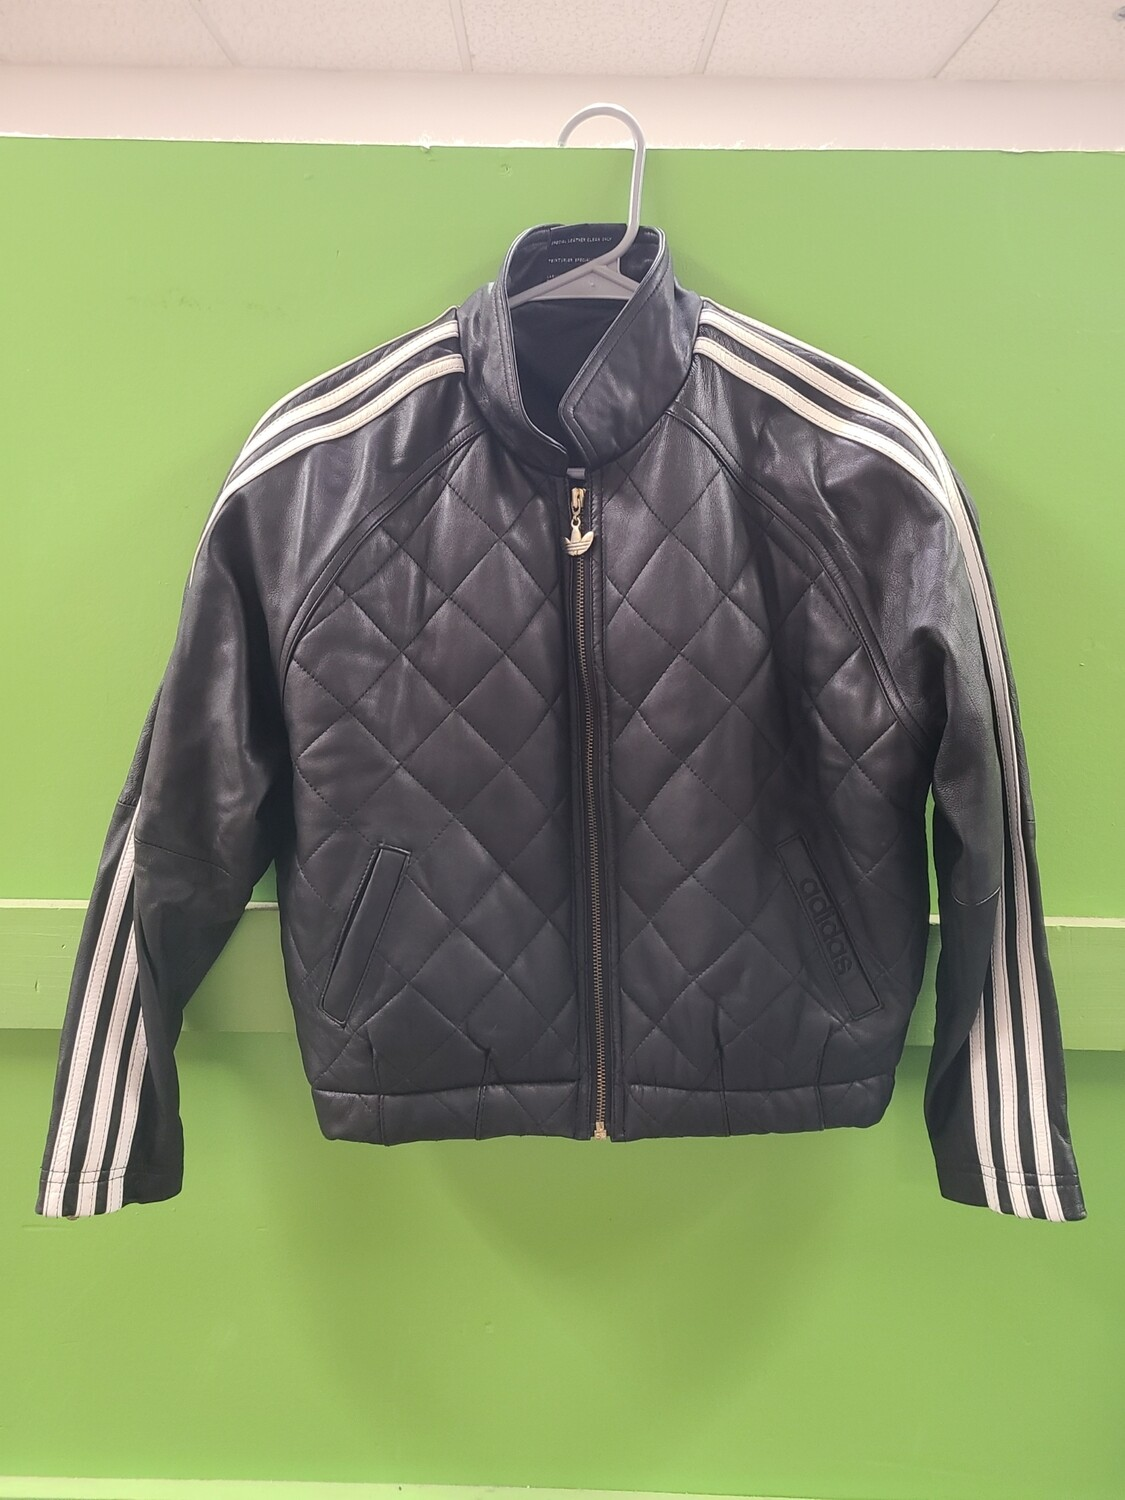 Vintage Adidas Leather Jacket